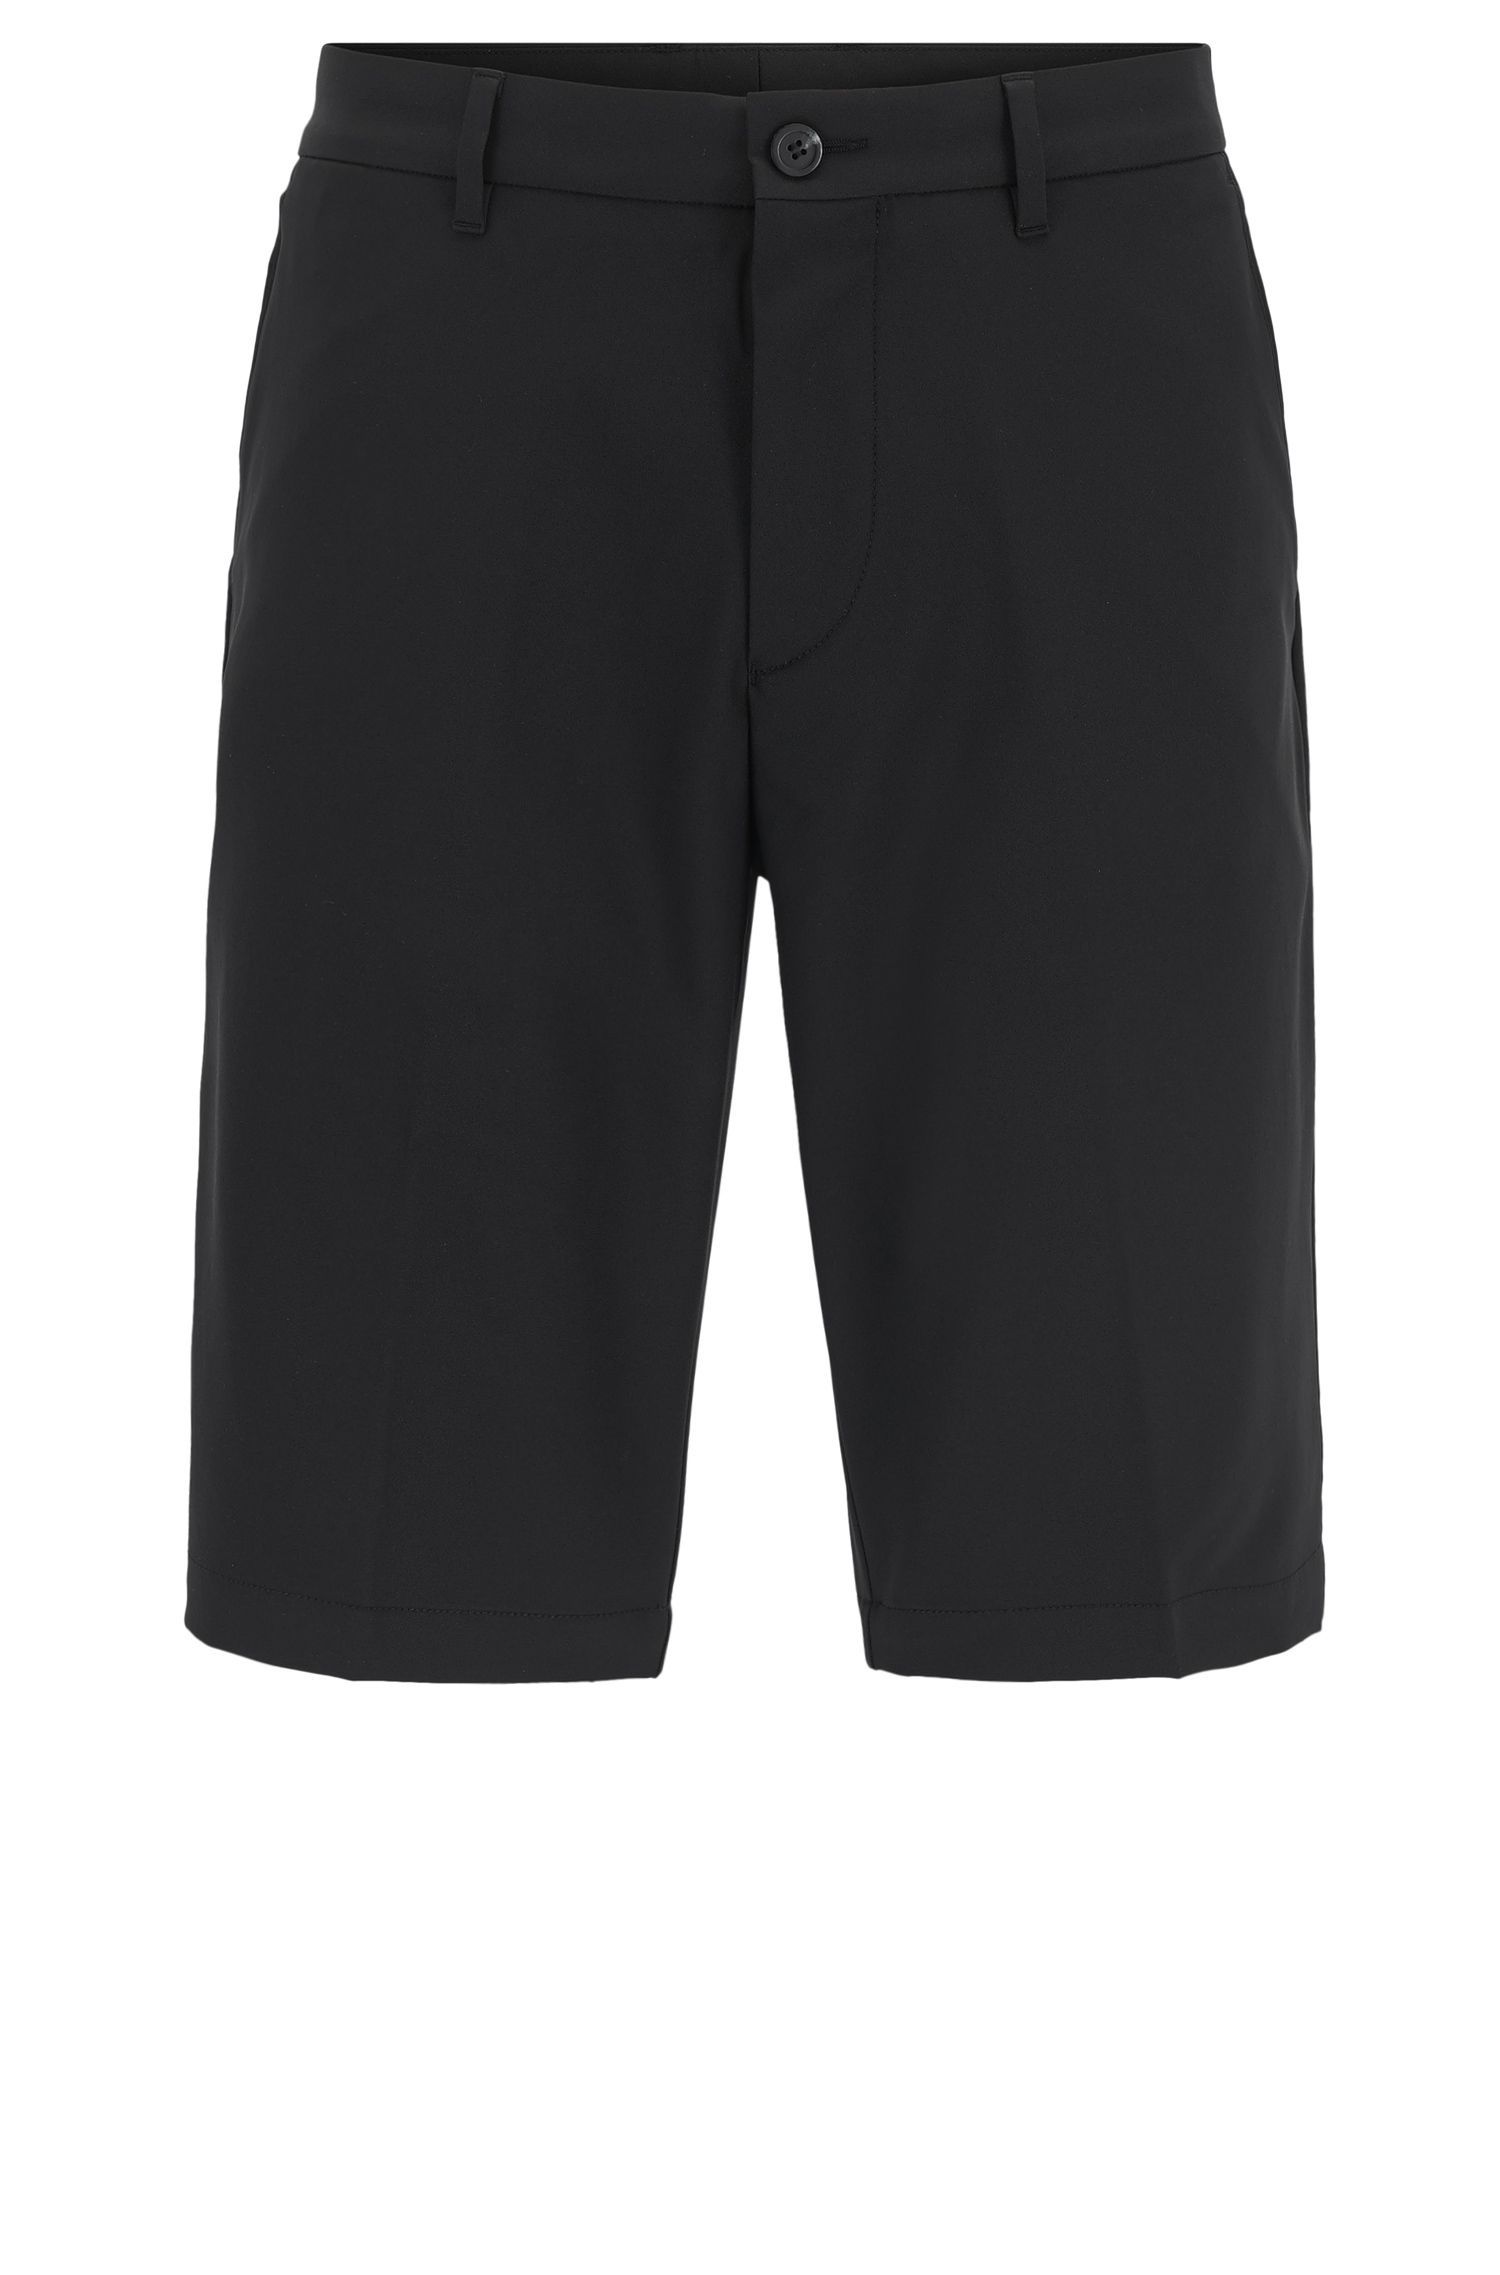 Shorts regular fit de golf en sarga técnica